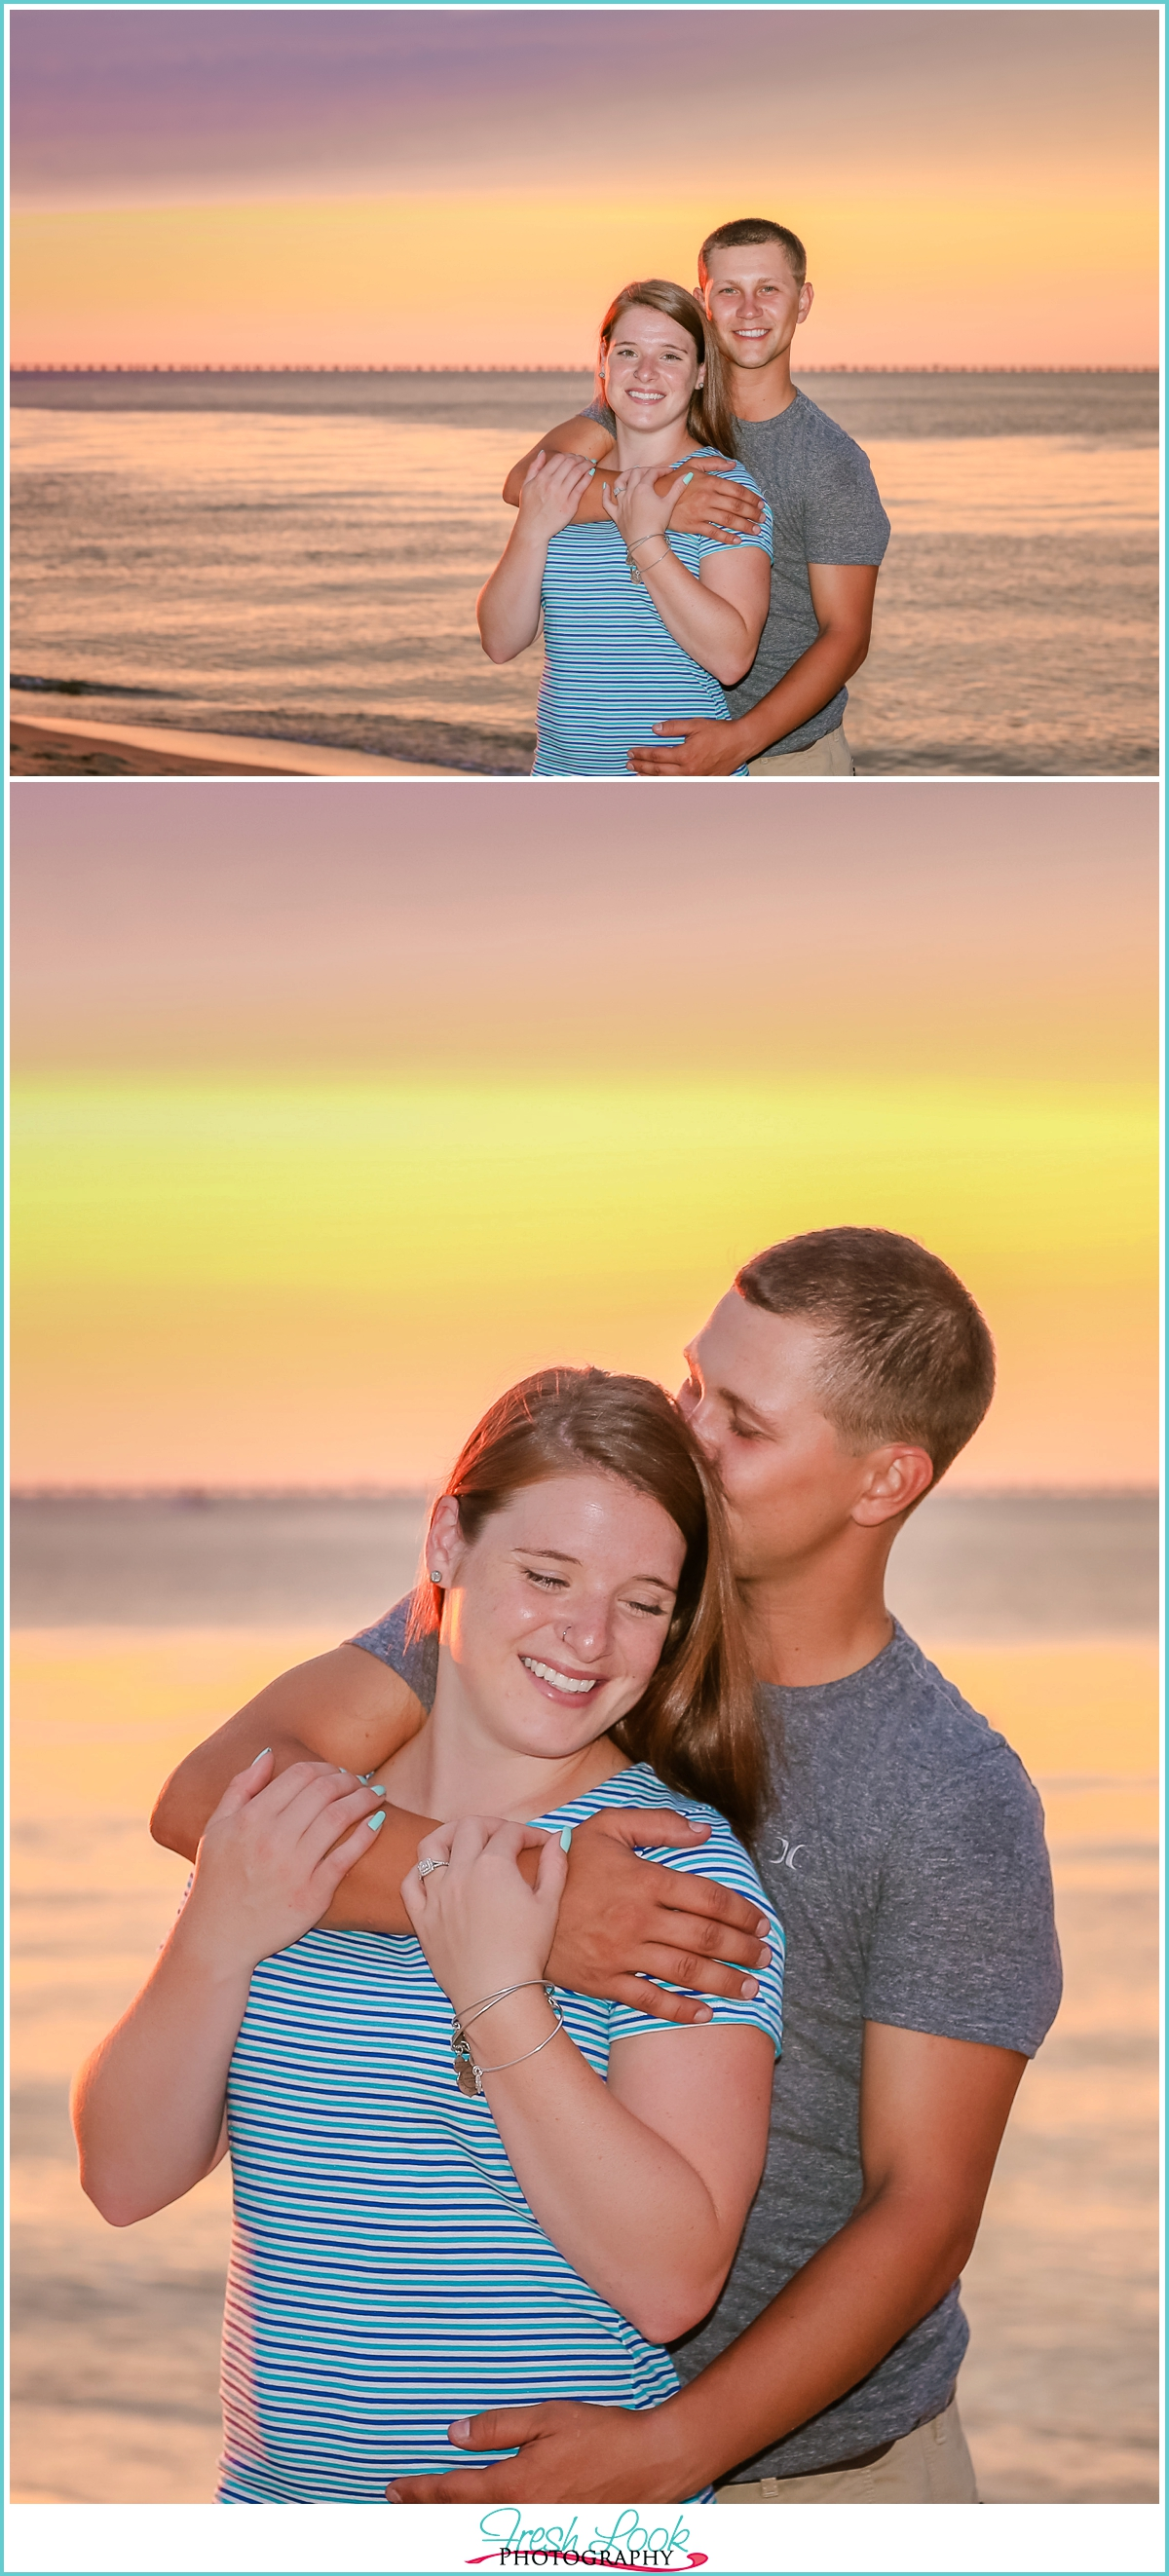 golden sunset engagement shoot